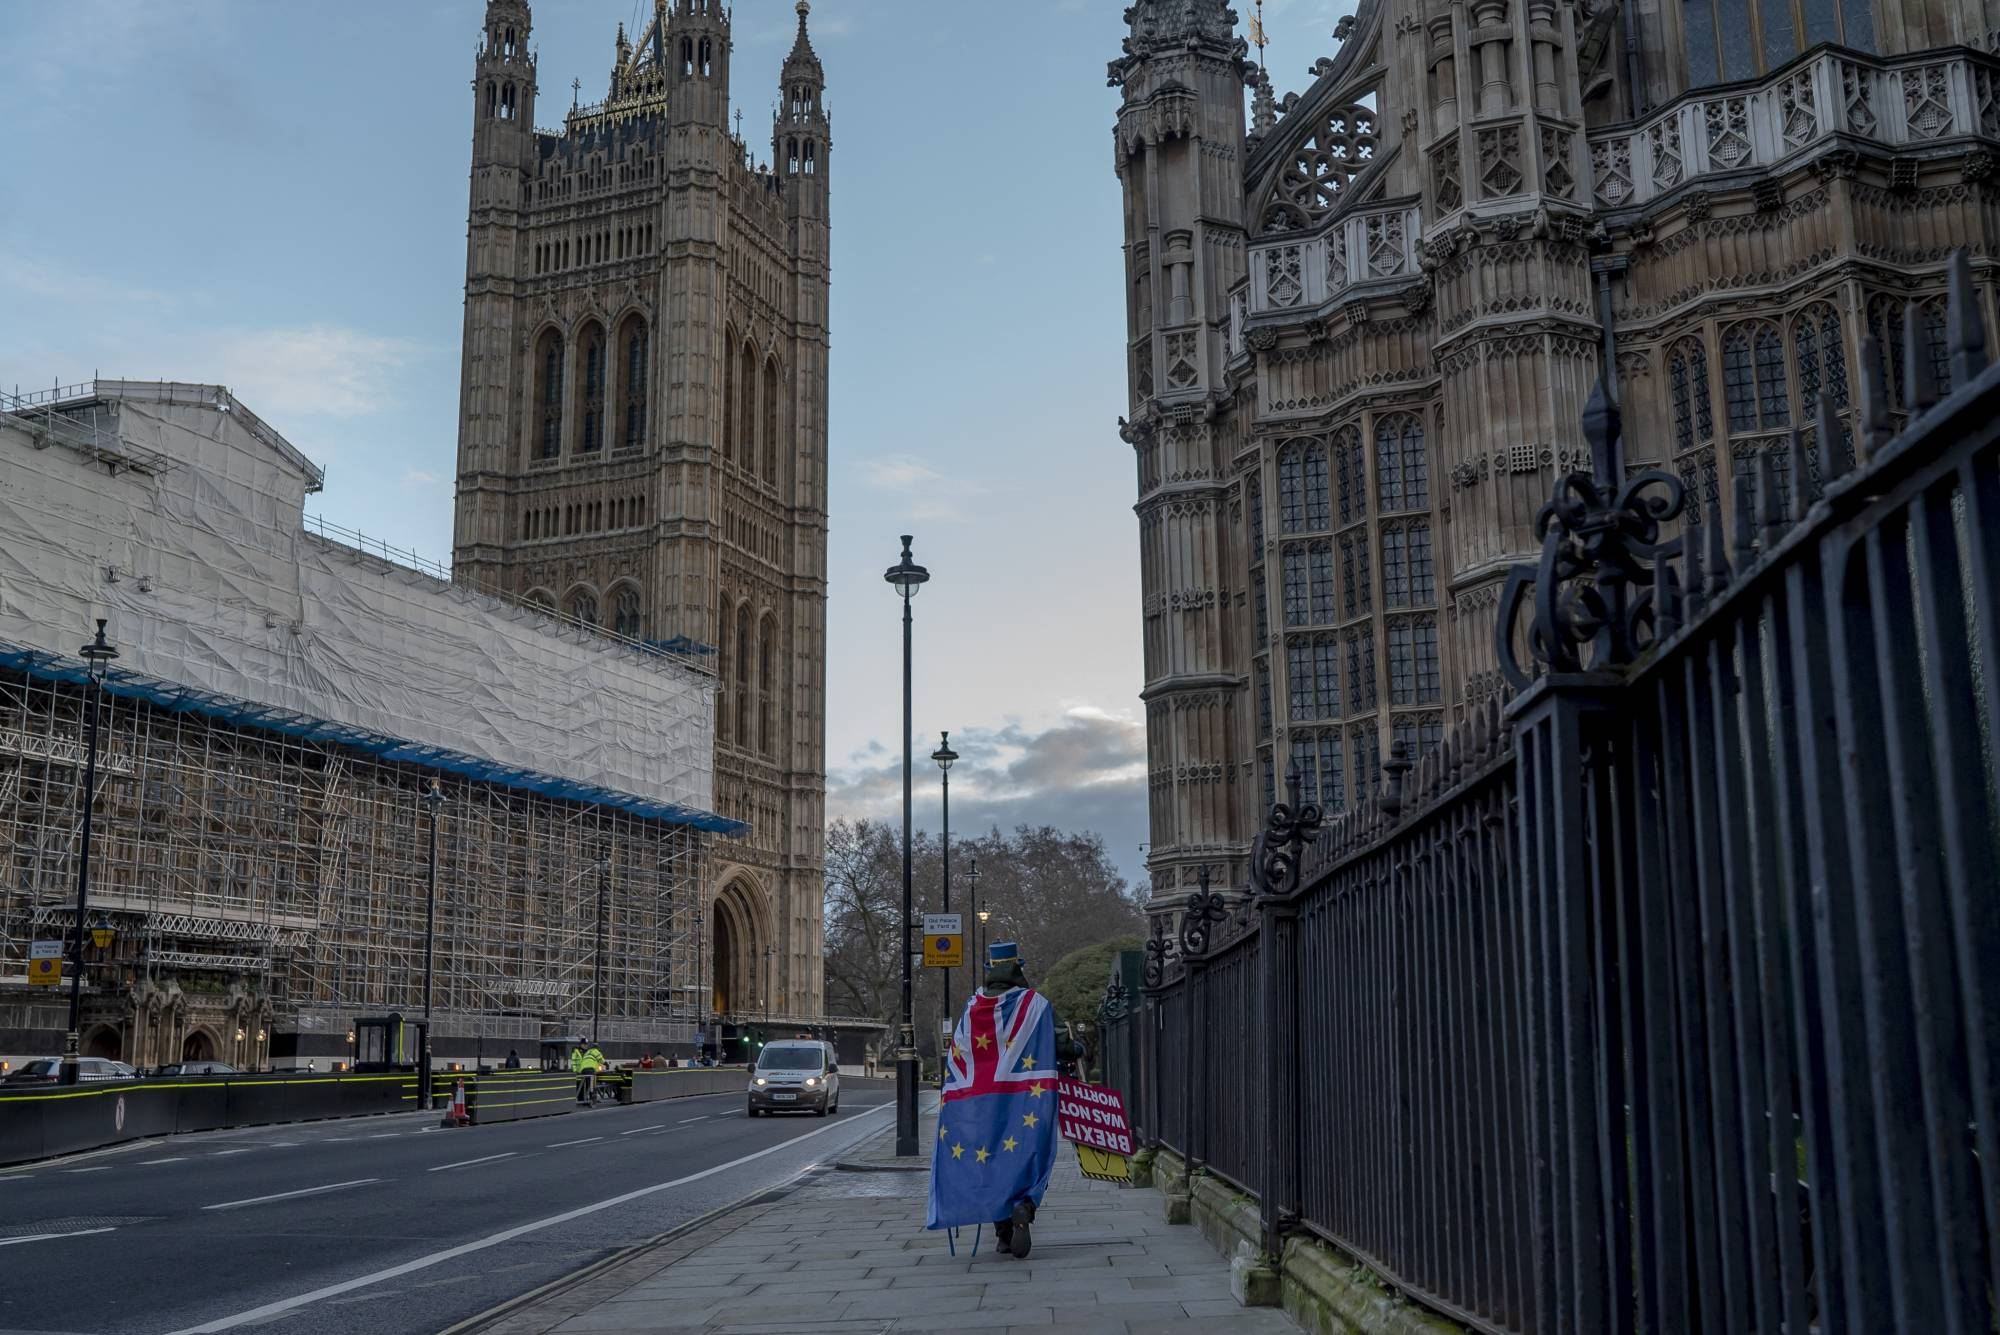 A lone European Union supporter demonstrates outside the British Parliament in London on Wednesday. | ANDREW TESTA / THE NEW YORK TIMES